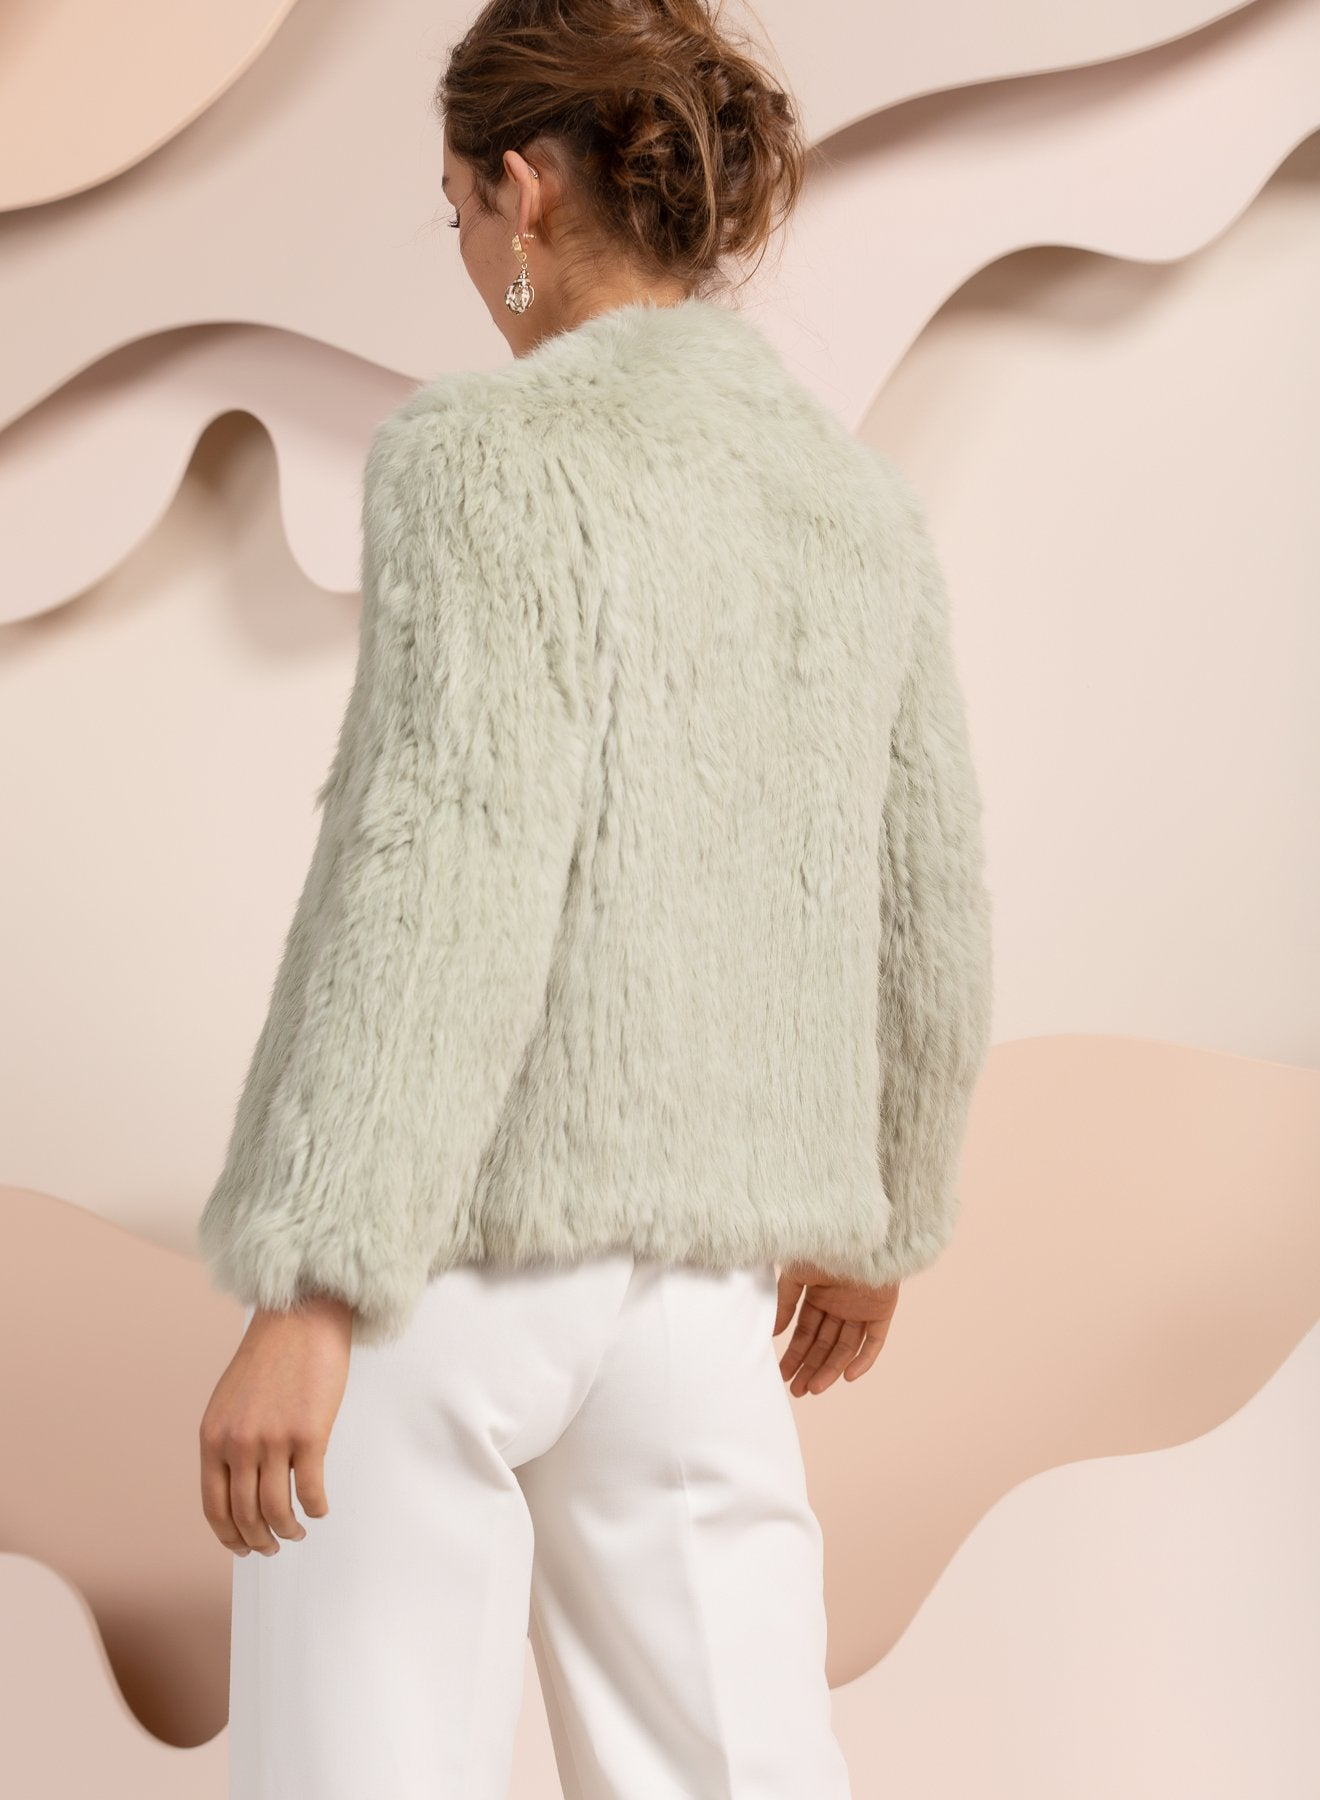 bubish mint green real rabbit fur jacket